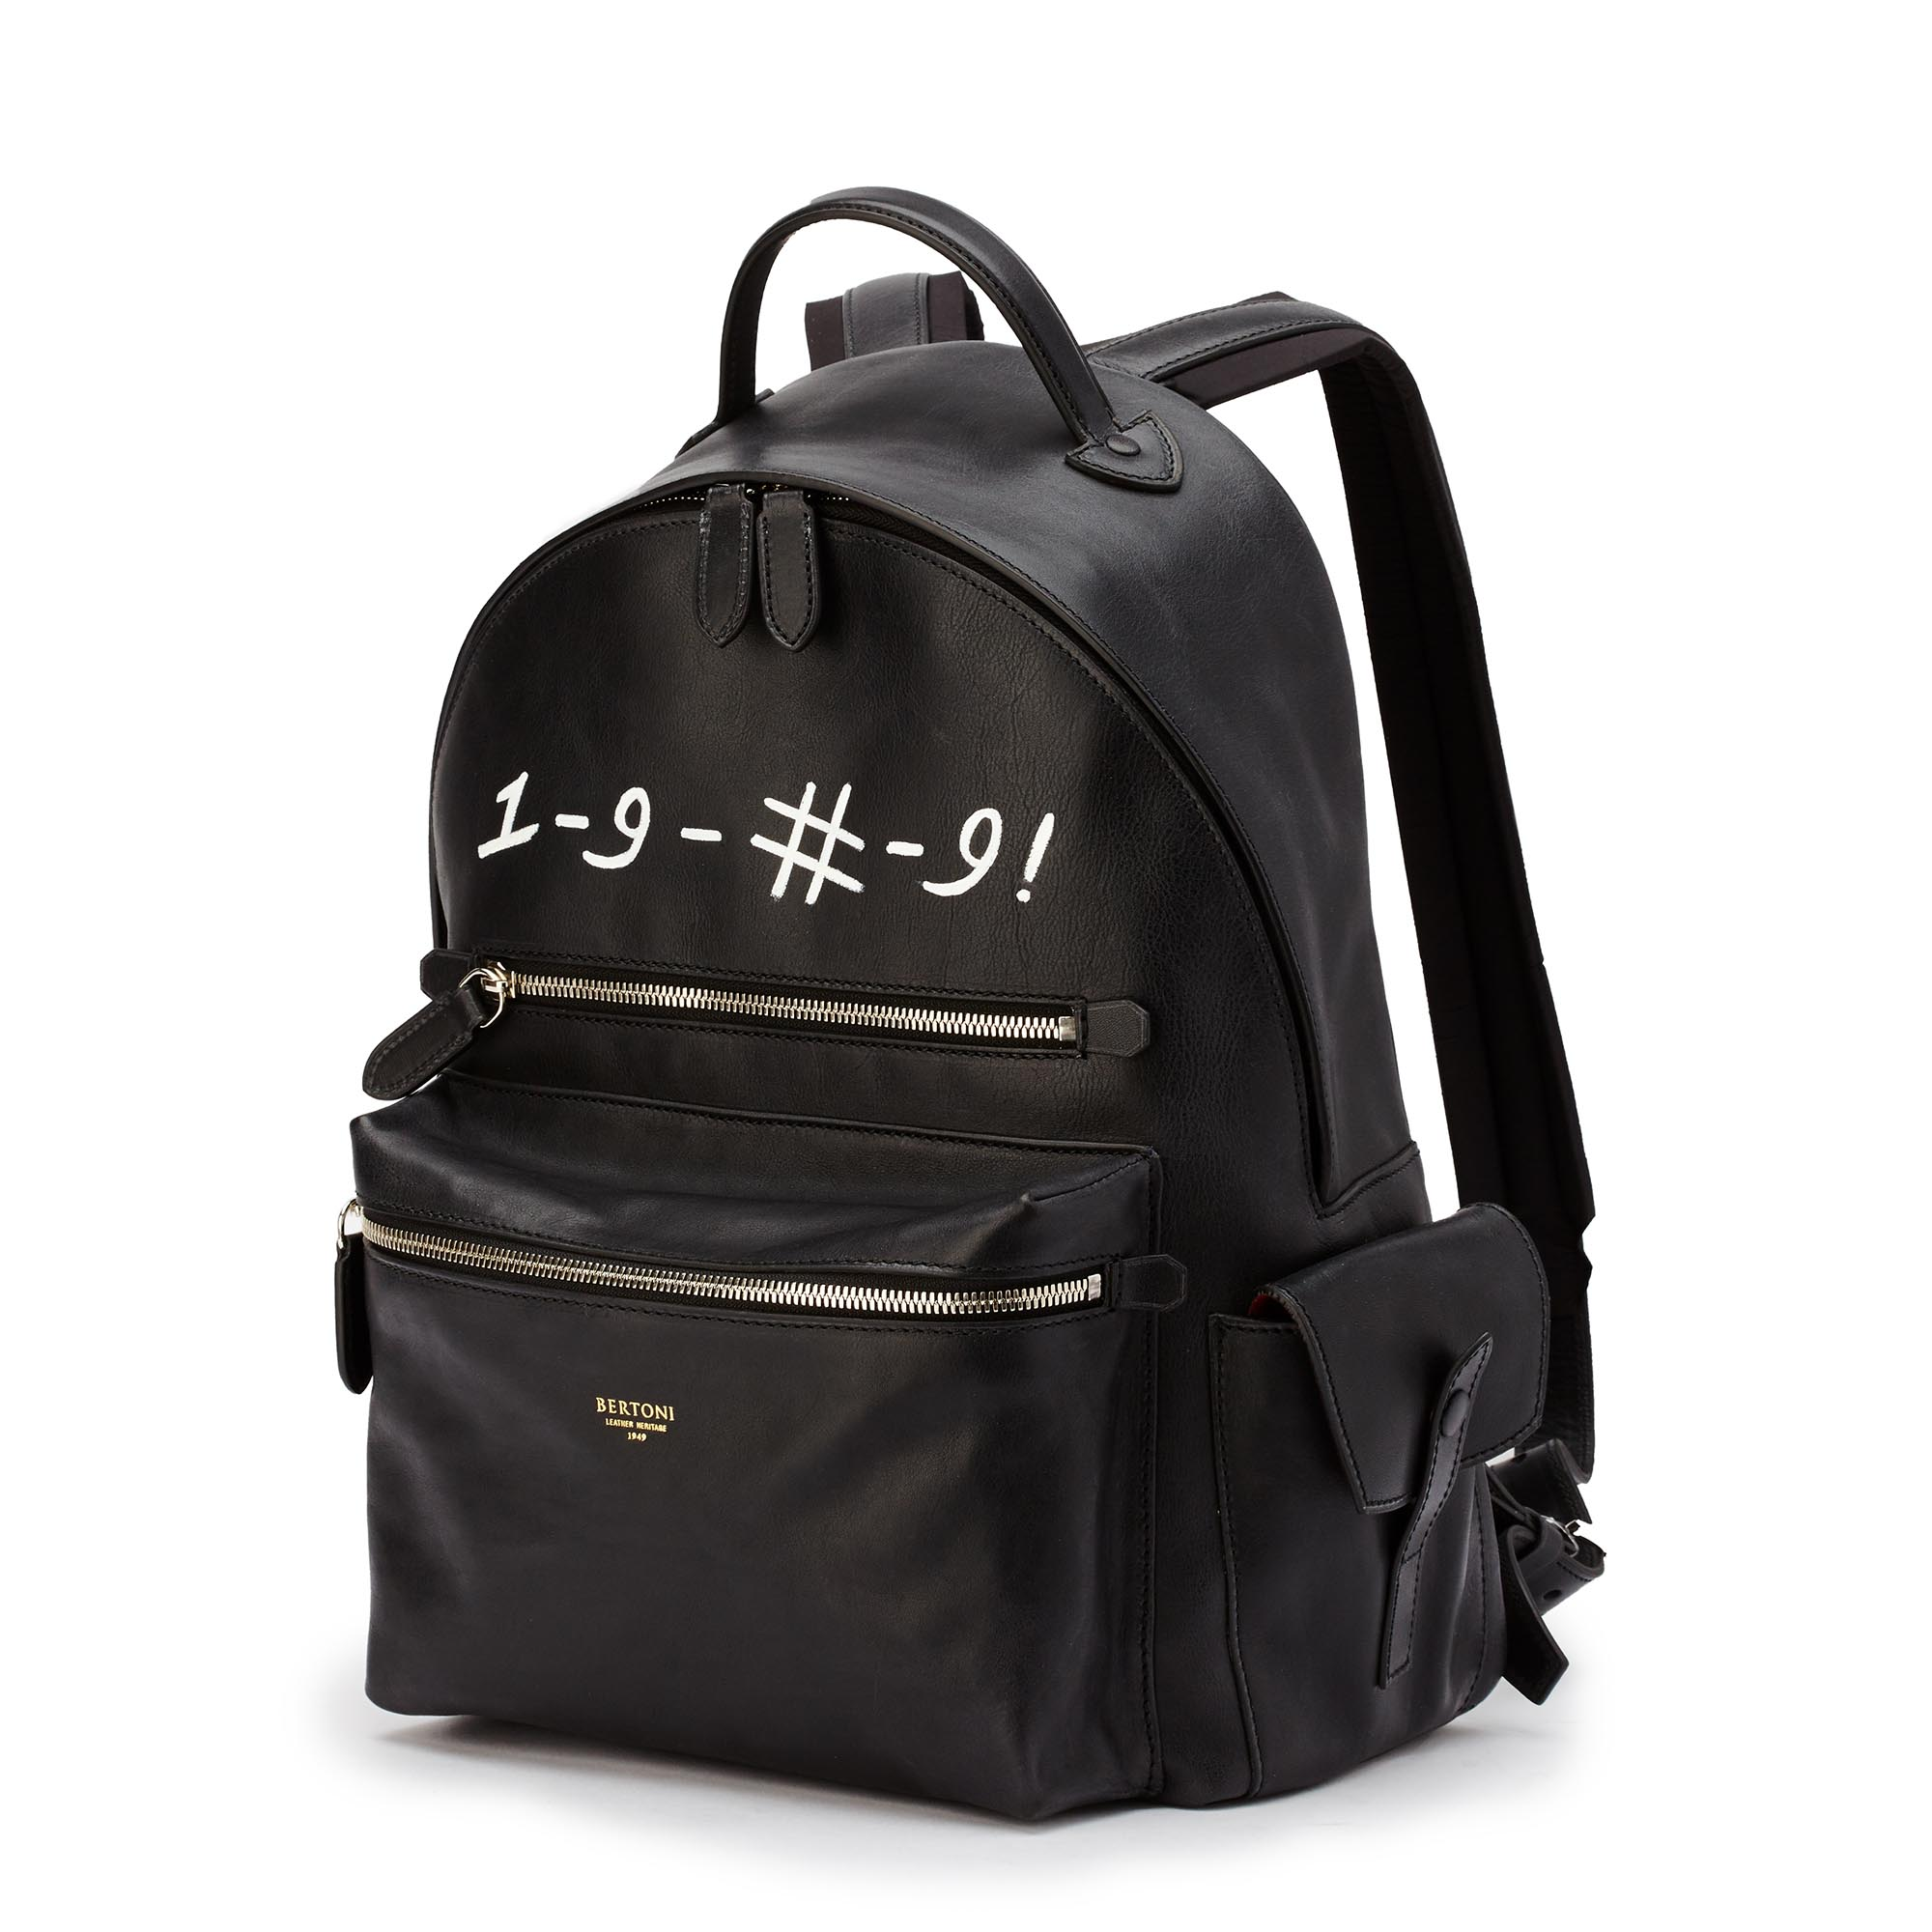 Zip-Backpack-black-rock-calf-Bertoni-1949_01